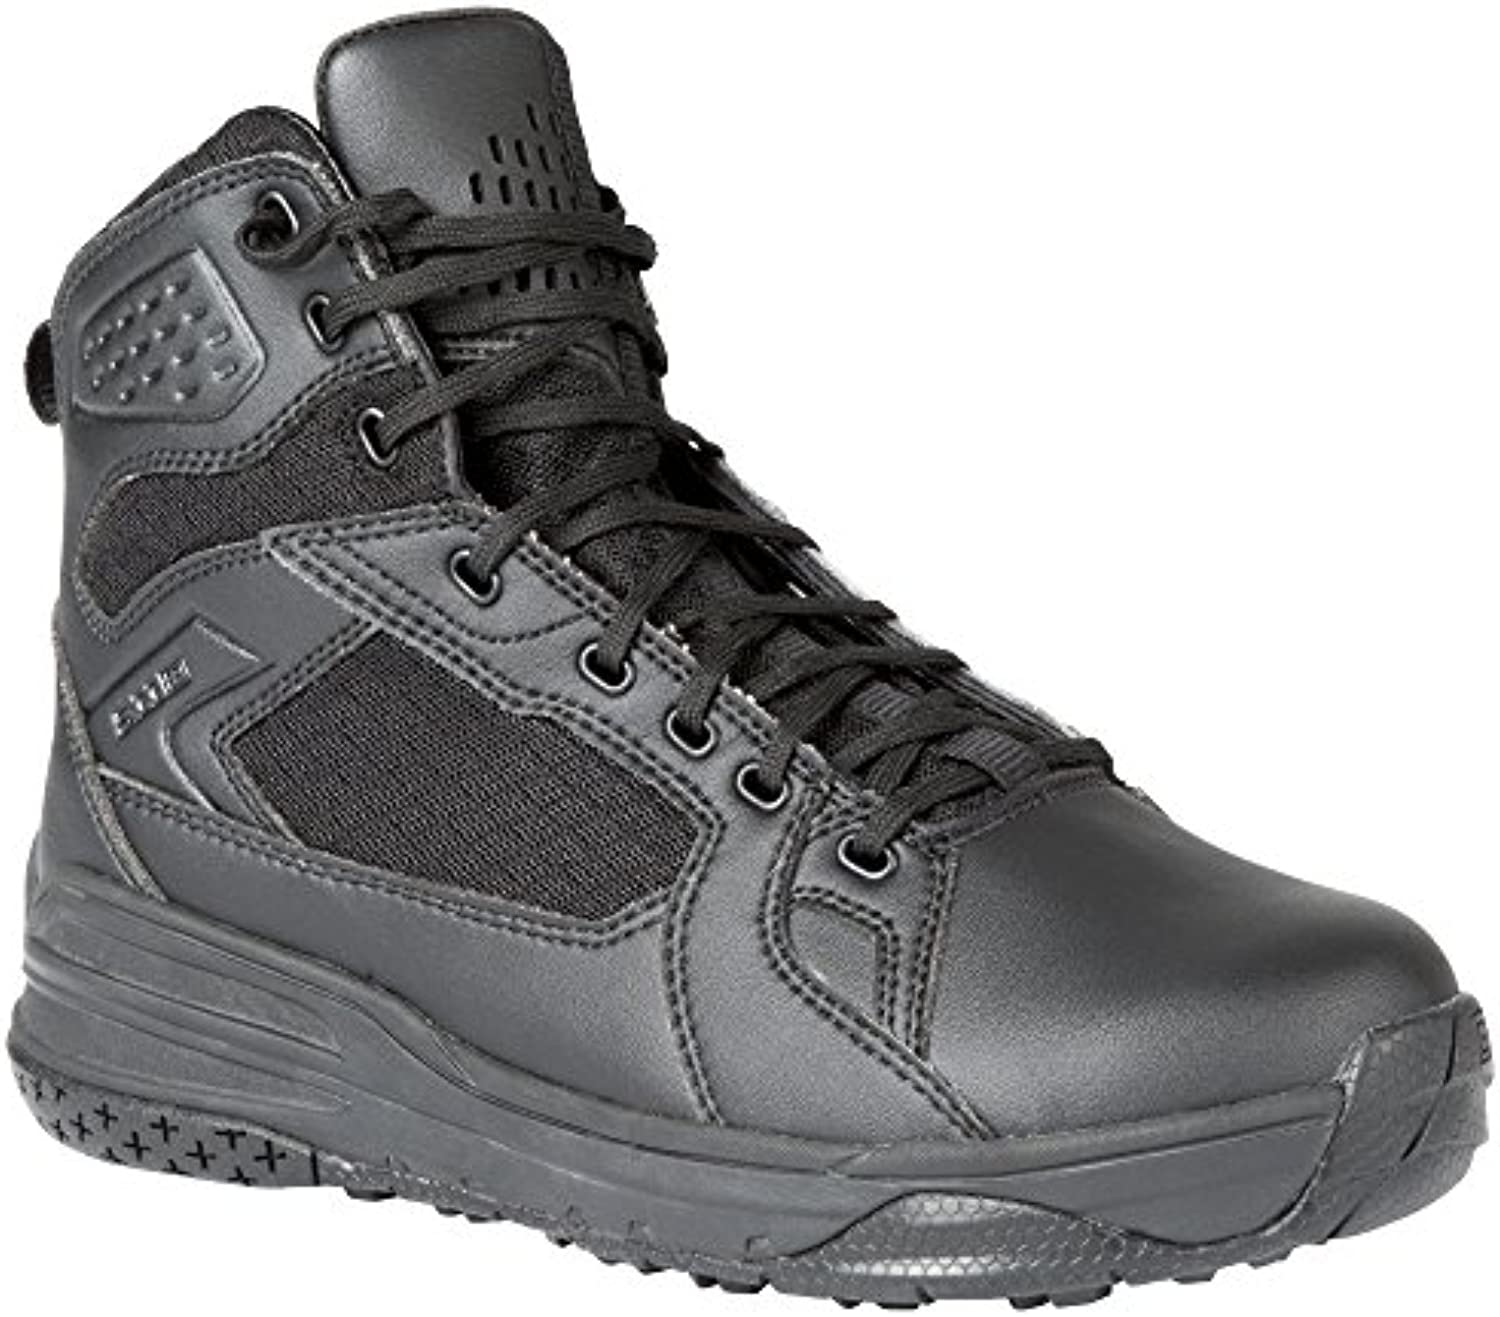 5.11 Tactical Series 5.11 Halcyon Patrol Boot Black 13R